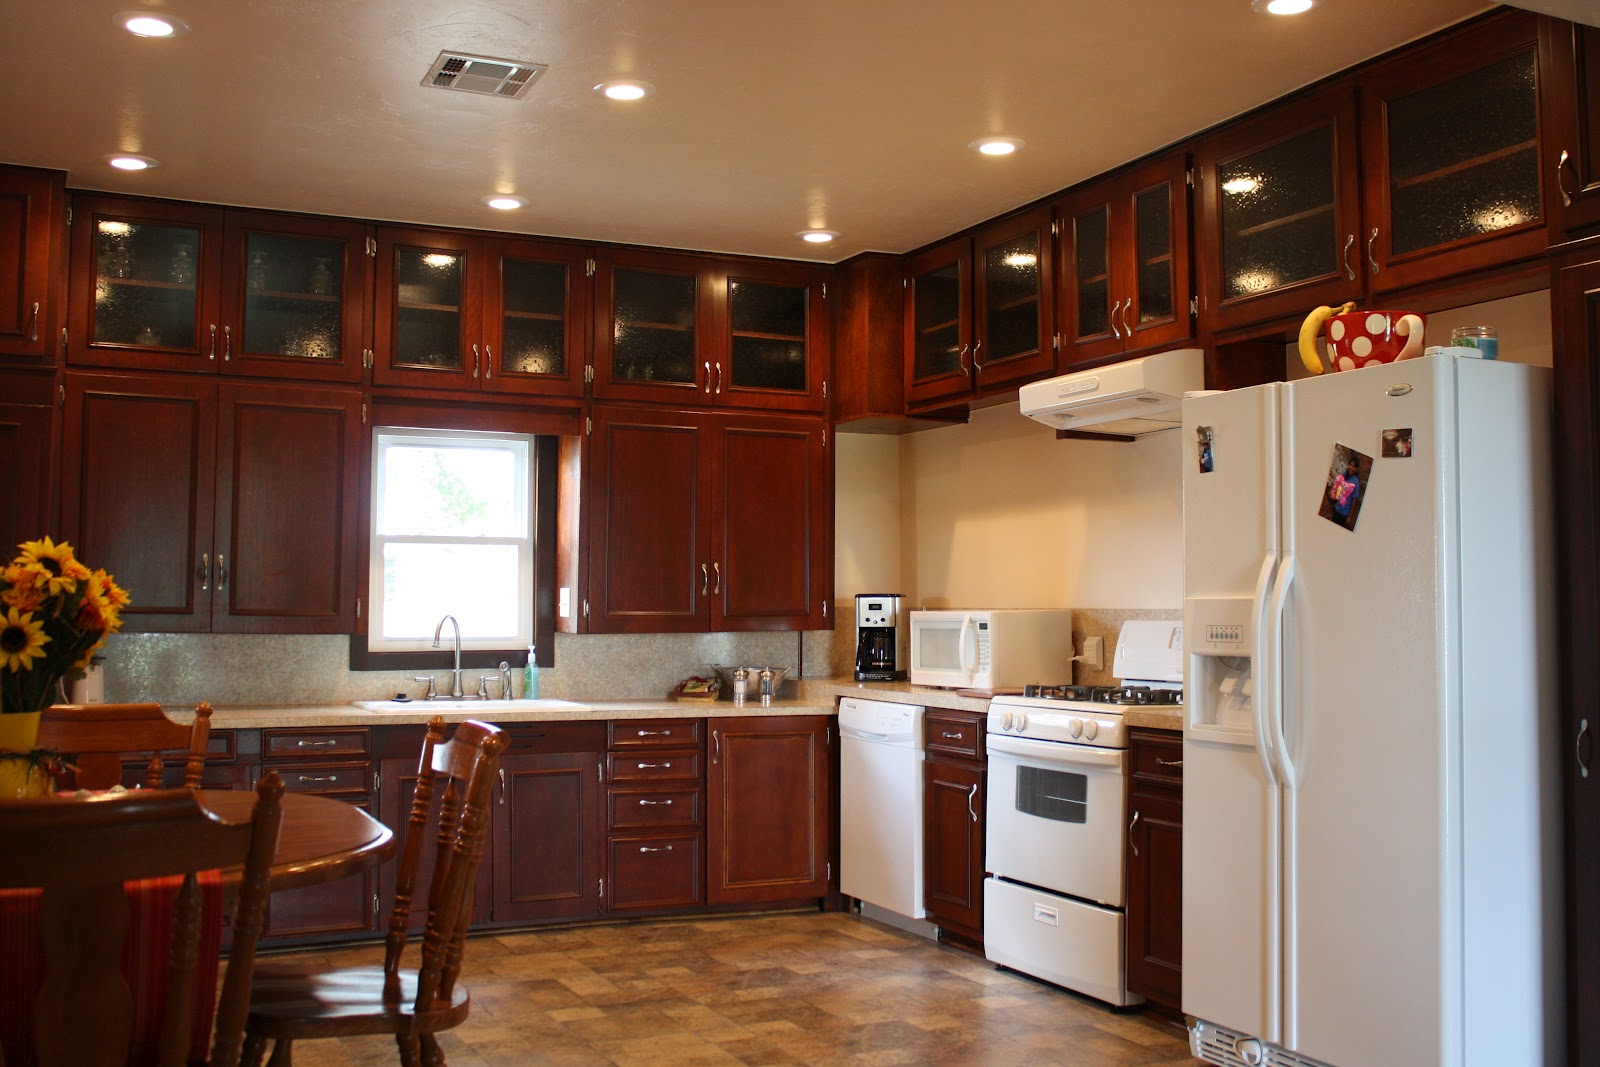 1920s home remodel vaughn 39 s cabinets blog for Kitchen ideas for 1920s house